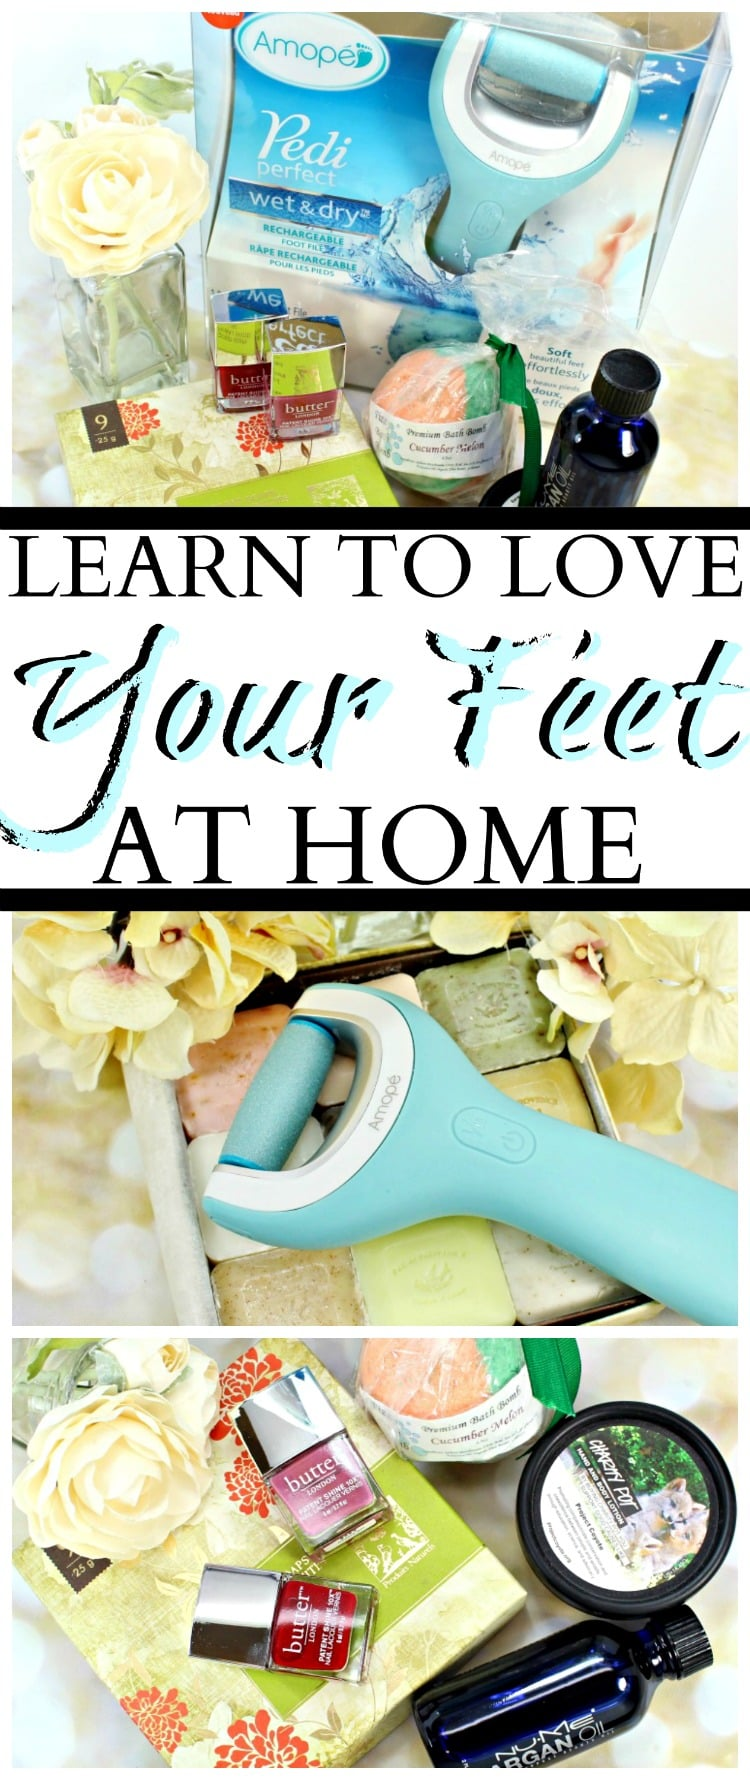 learn to love your feet at home amope